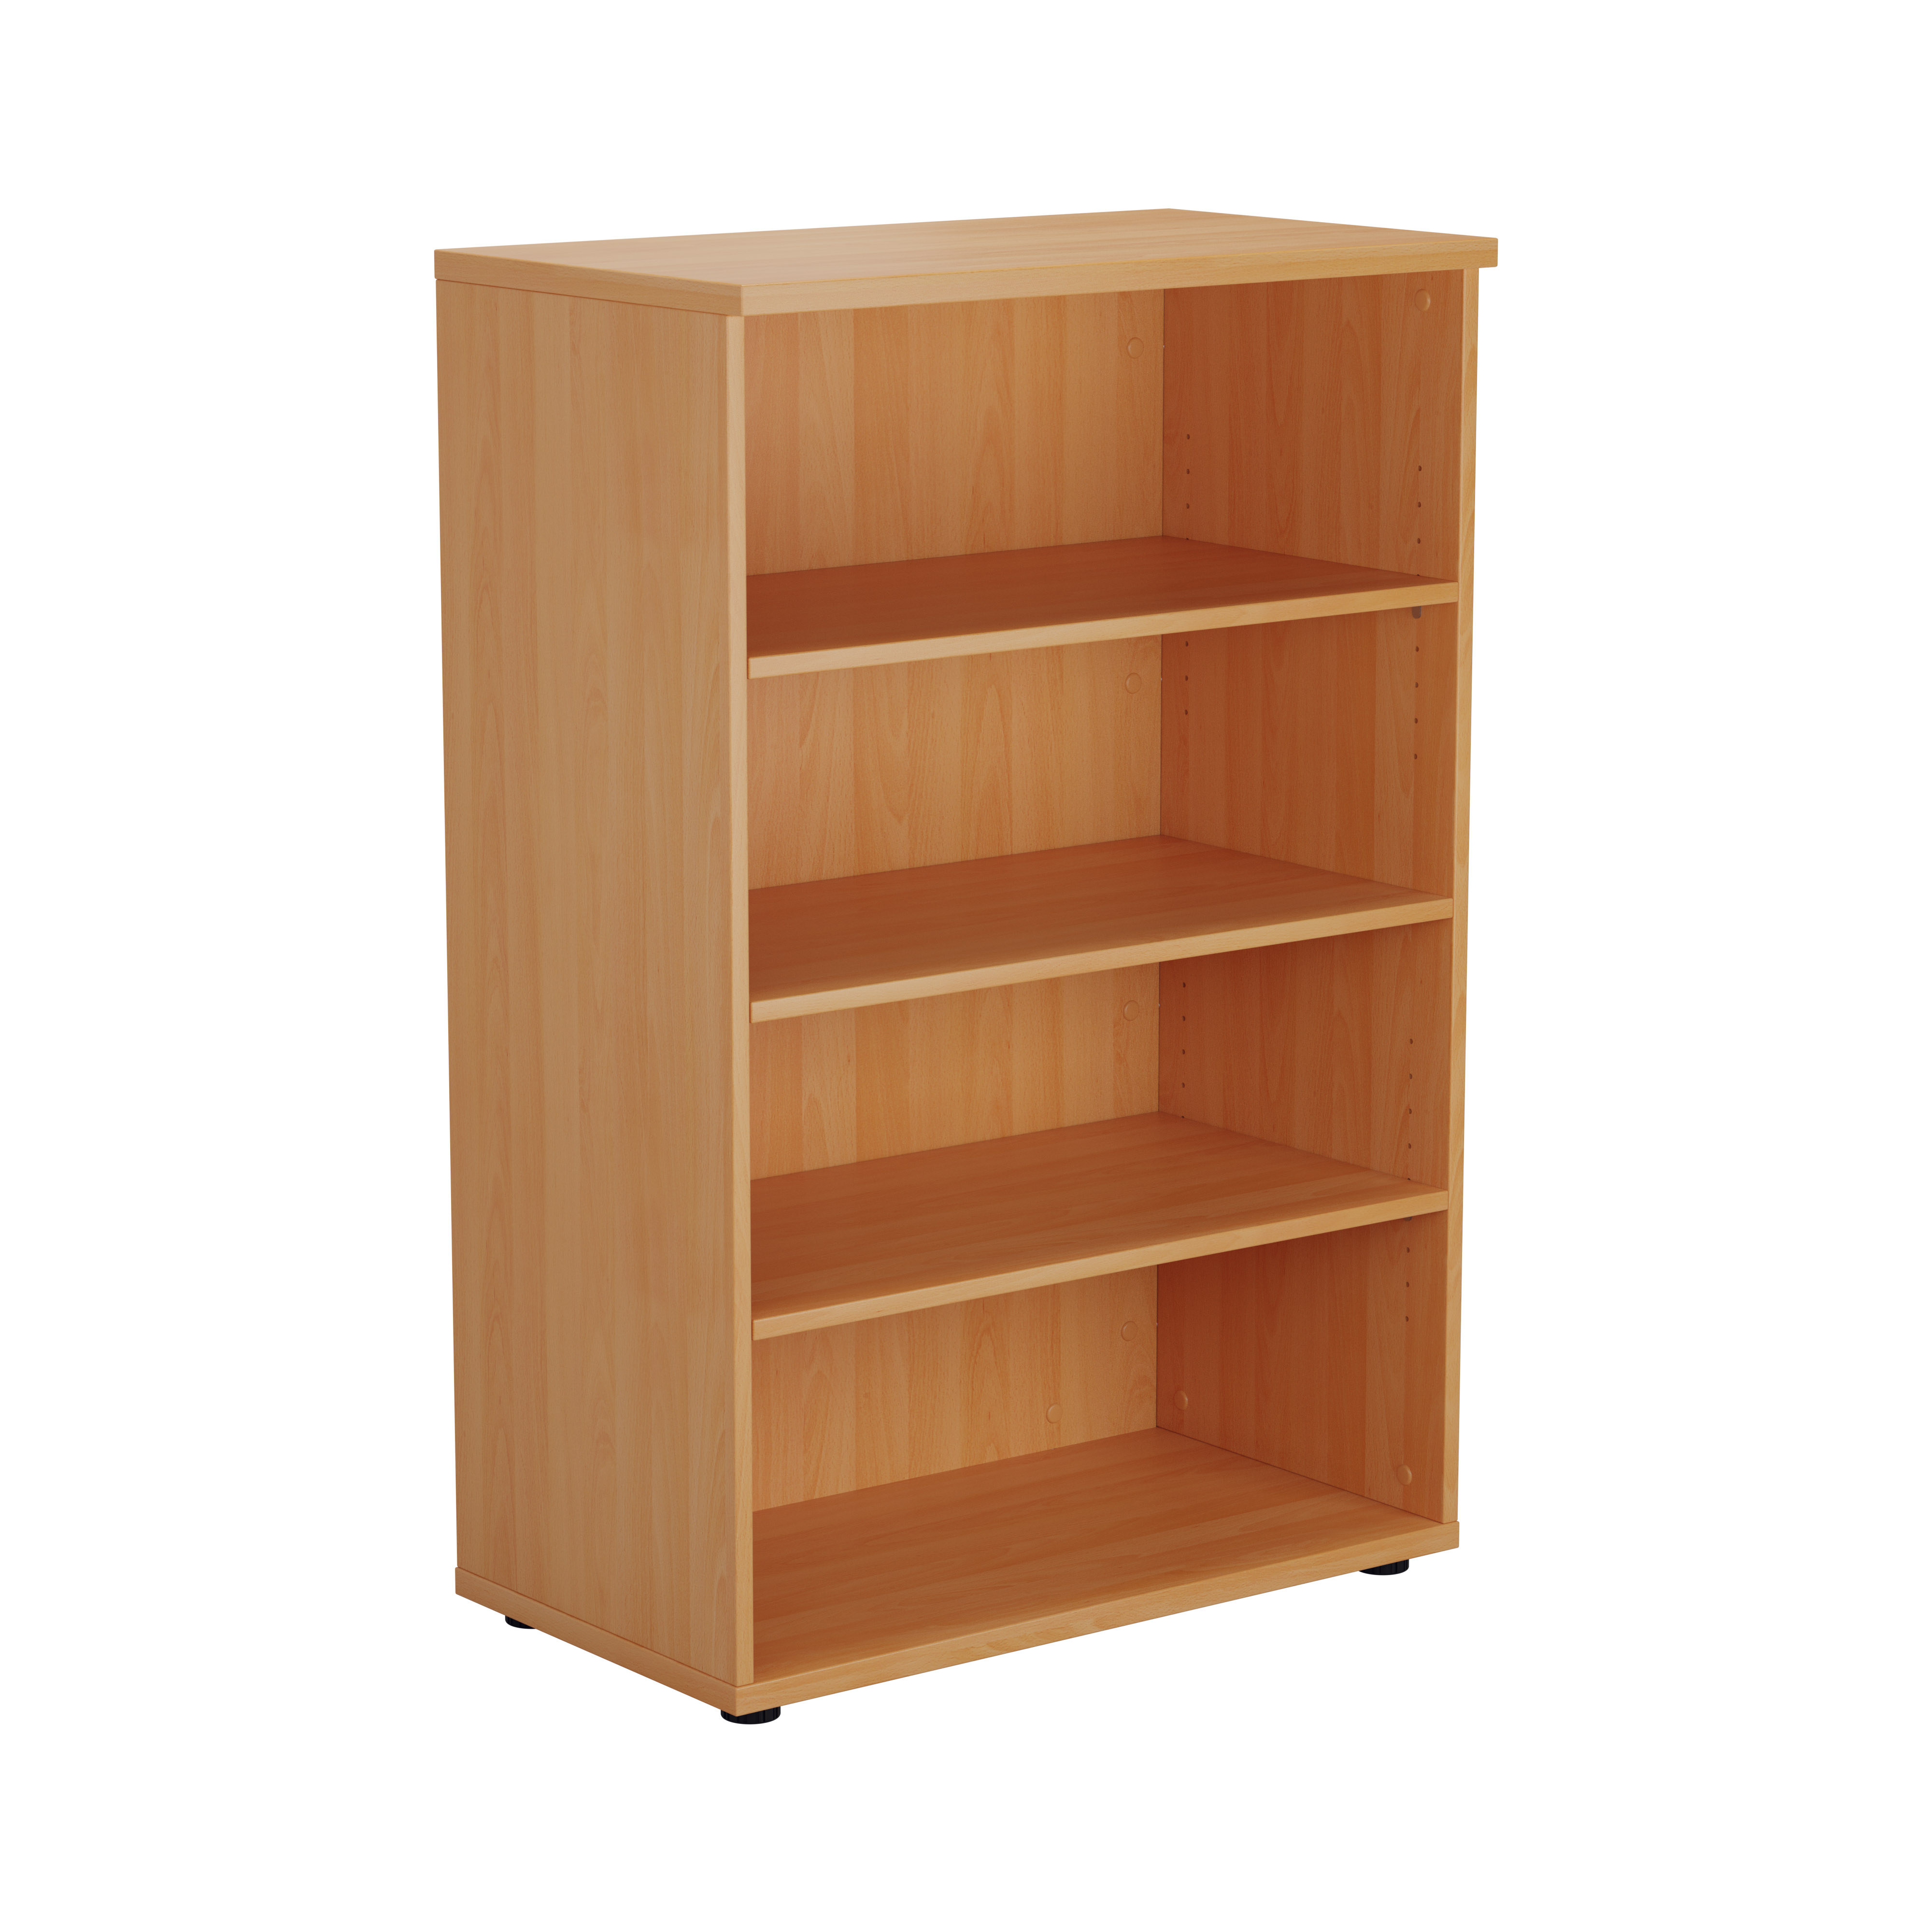 Essentials - 1200mm High Bookcase